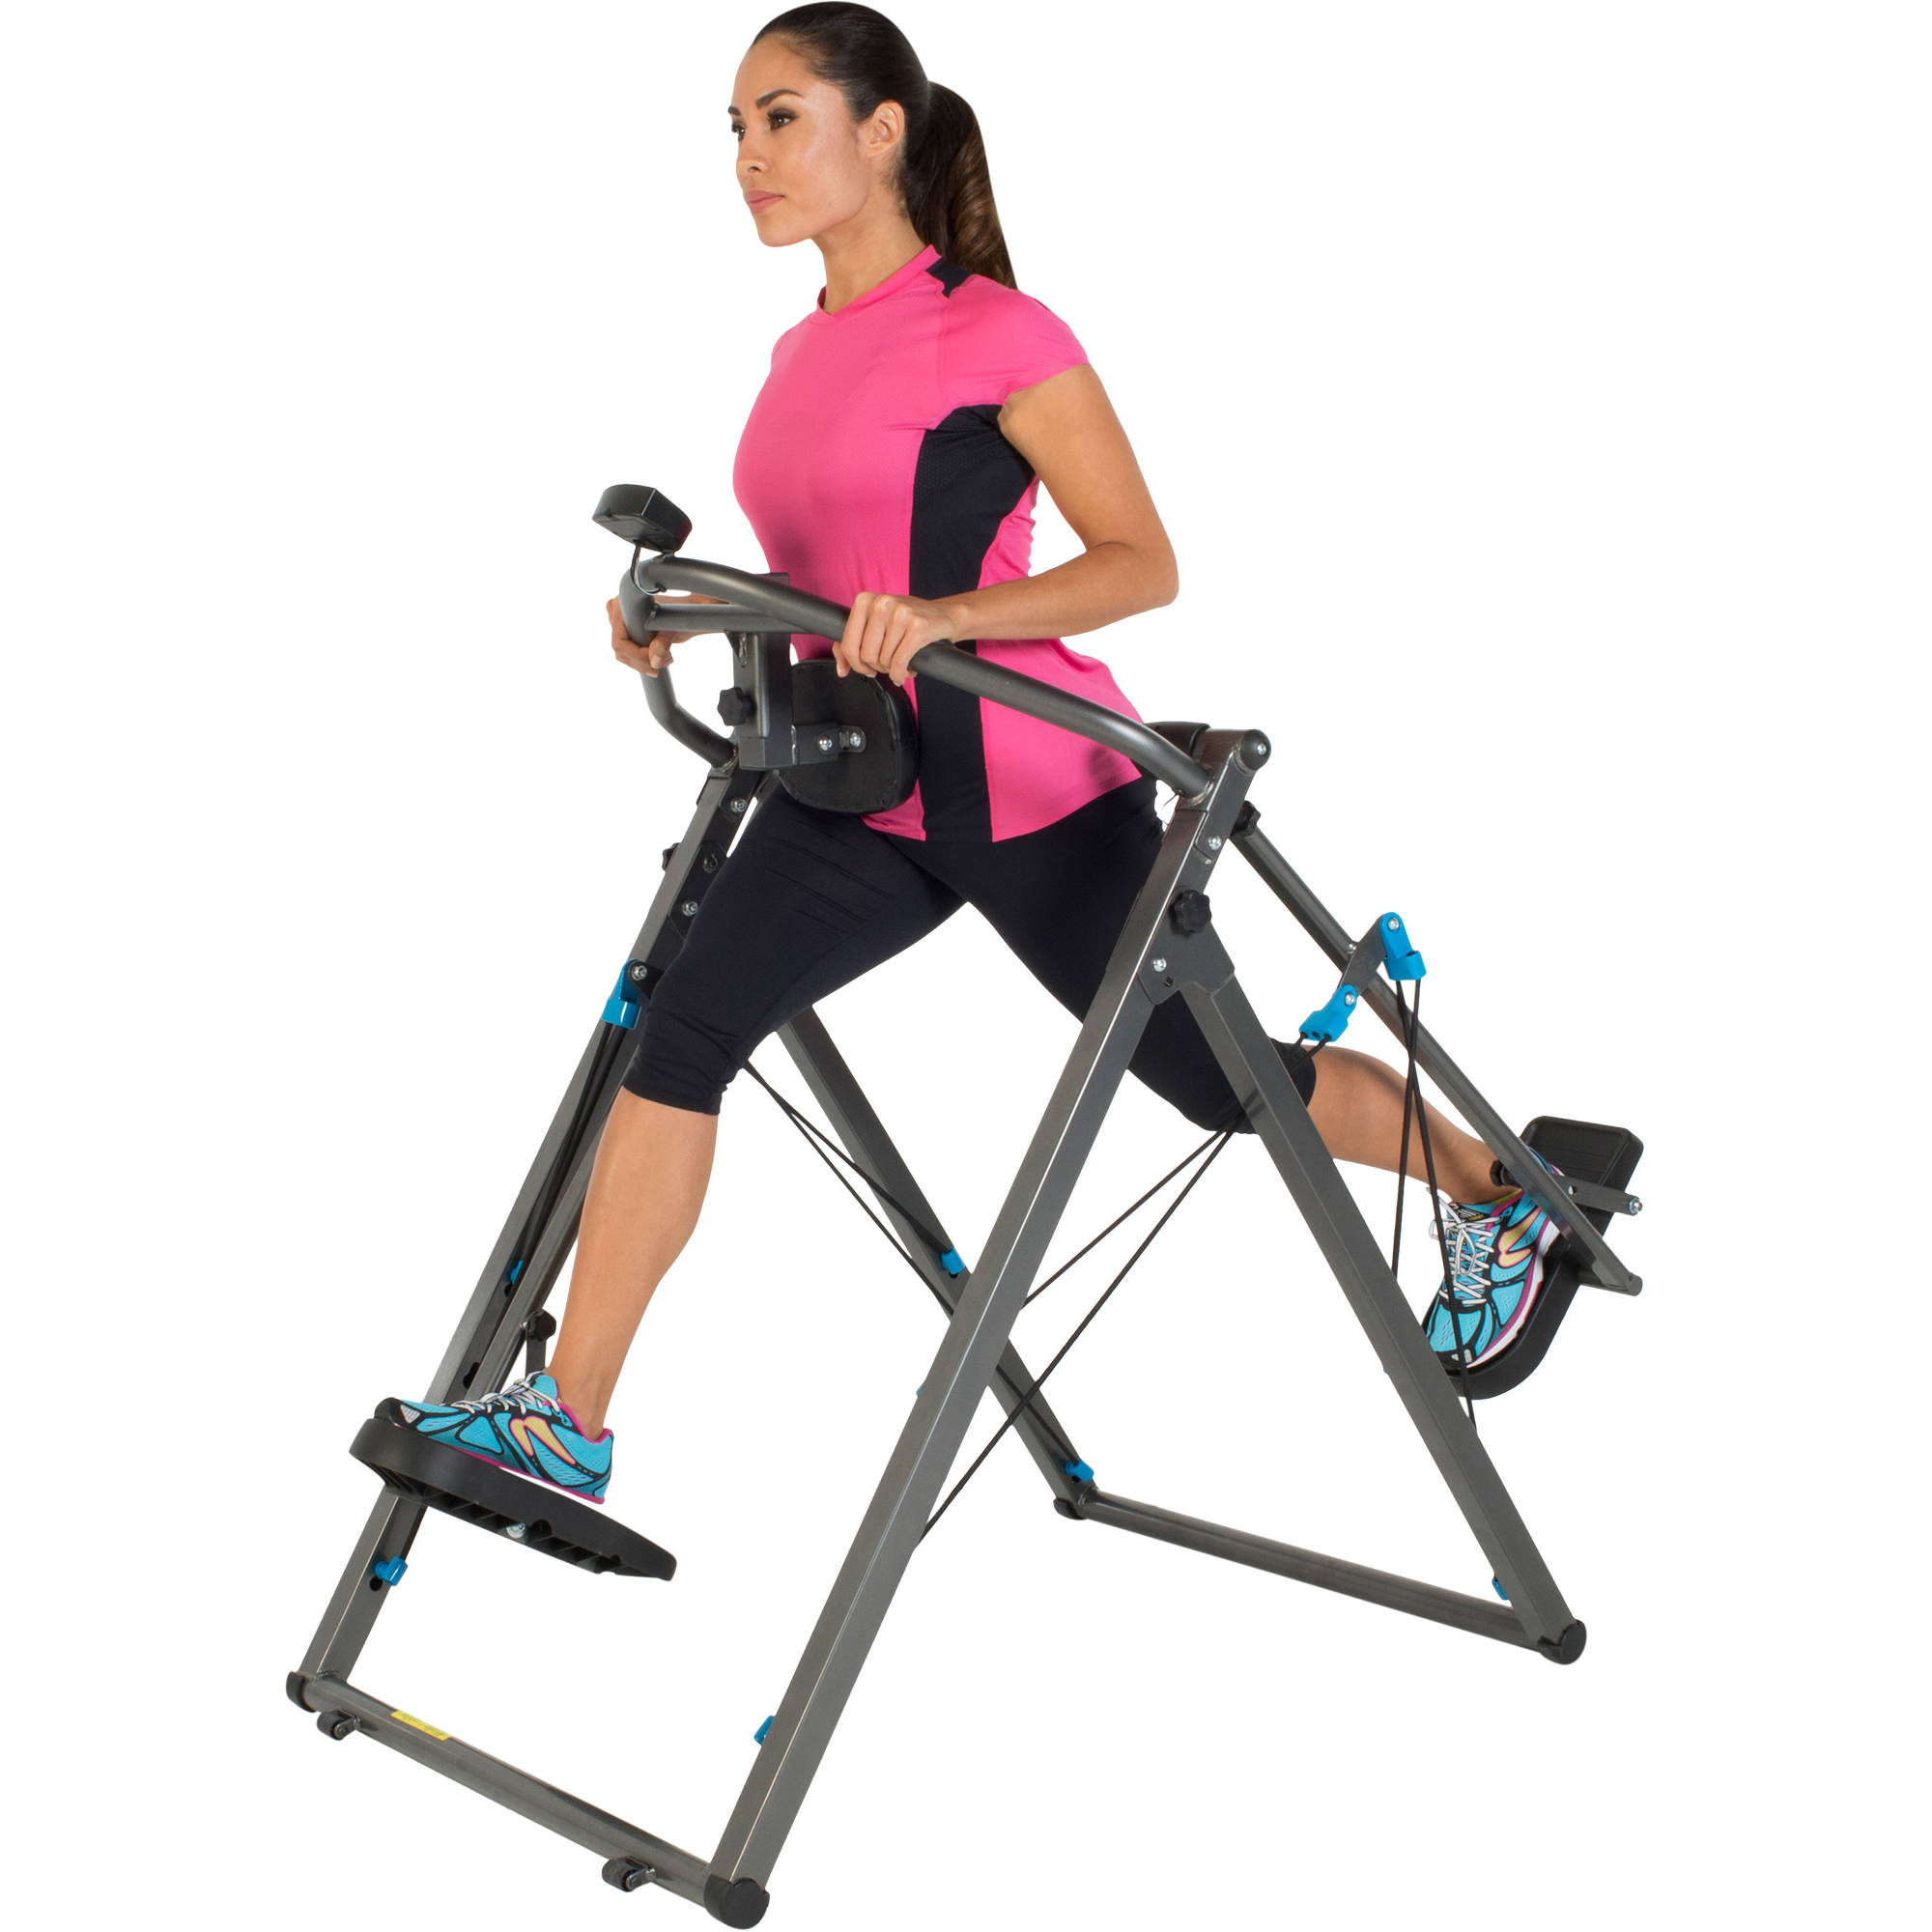 "Fitness Reality Zero Impact 48"" Stride Elliptical Cloud Walker X3 with Pulse Sensors"